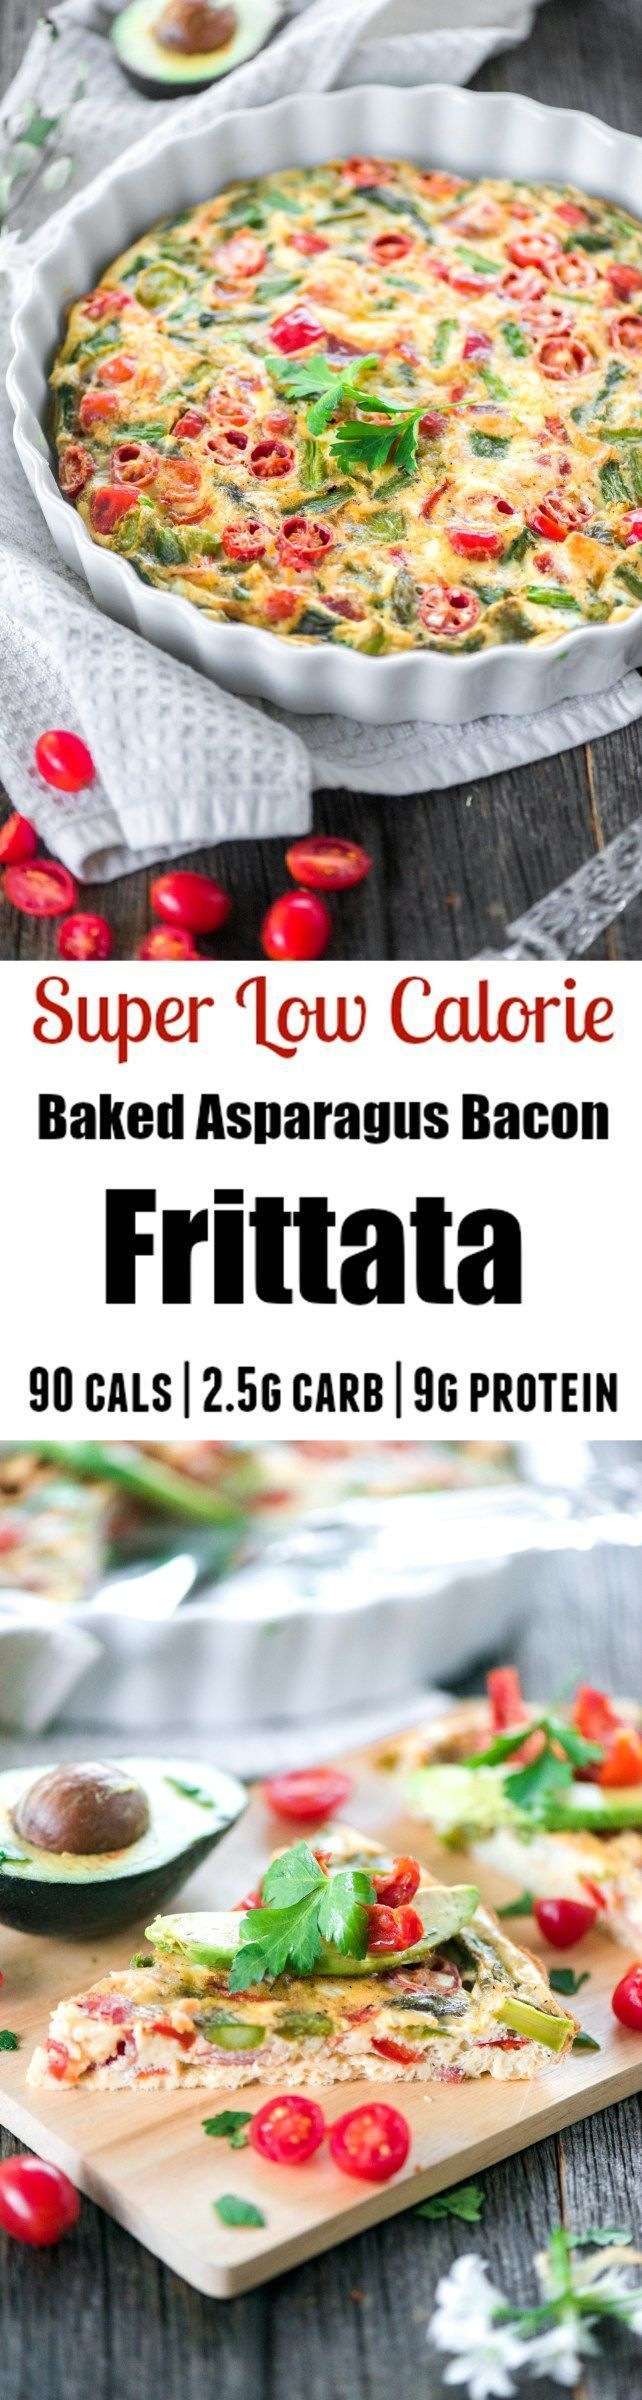 Low-Carb Baked Asparagus Bacon Frittata Low-Carb Baked Asparagus ... - Low-Carb Baked Asparagus Bac